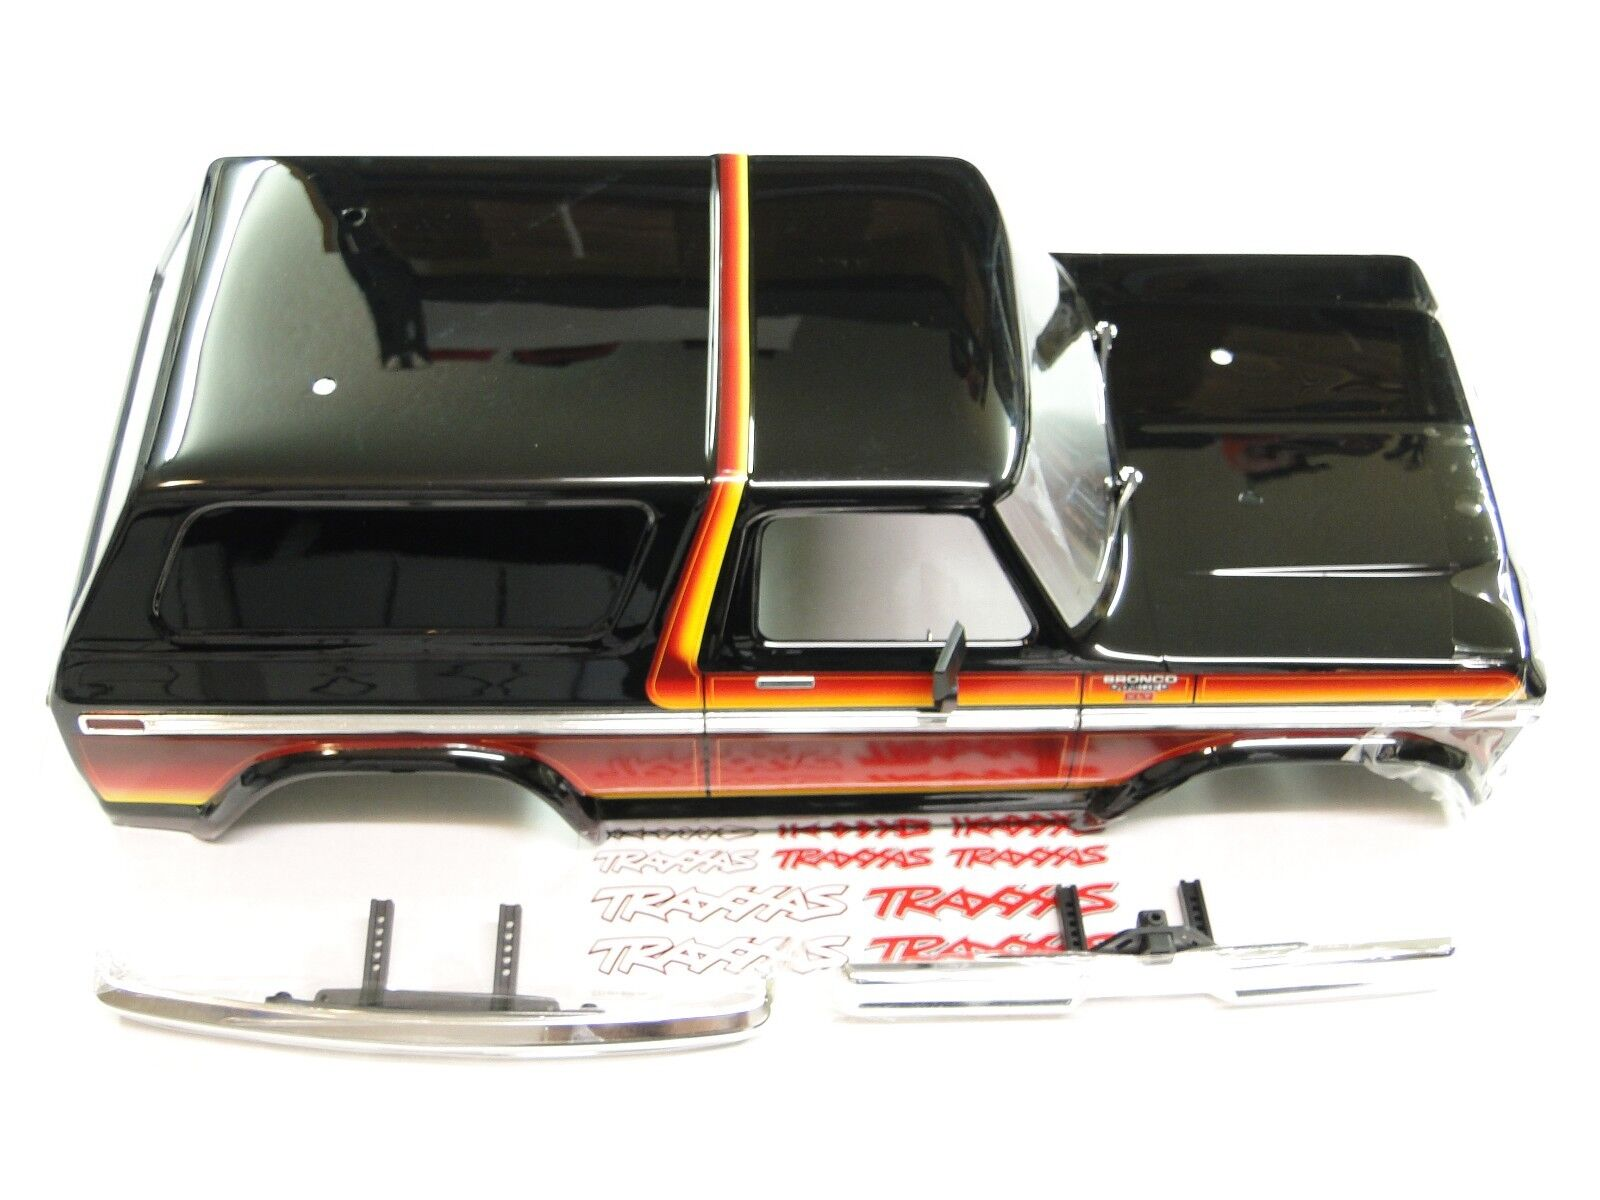 NEW TRAXXAS TRX-4 BRONCO Body FORD RANGER XLT Painted SUNSET Chrome Bumpers RV3S